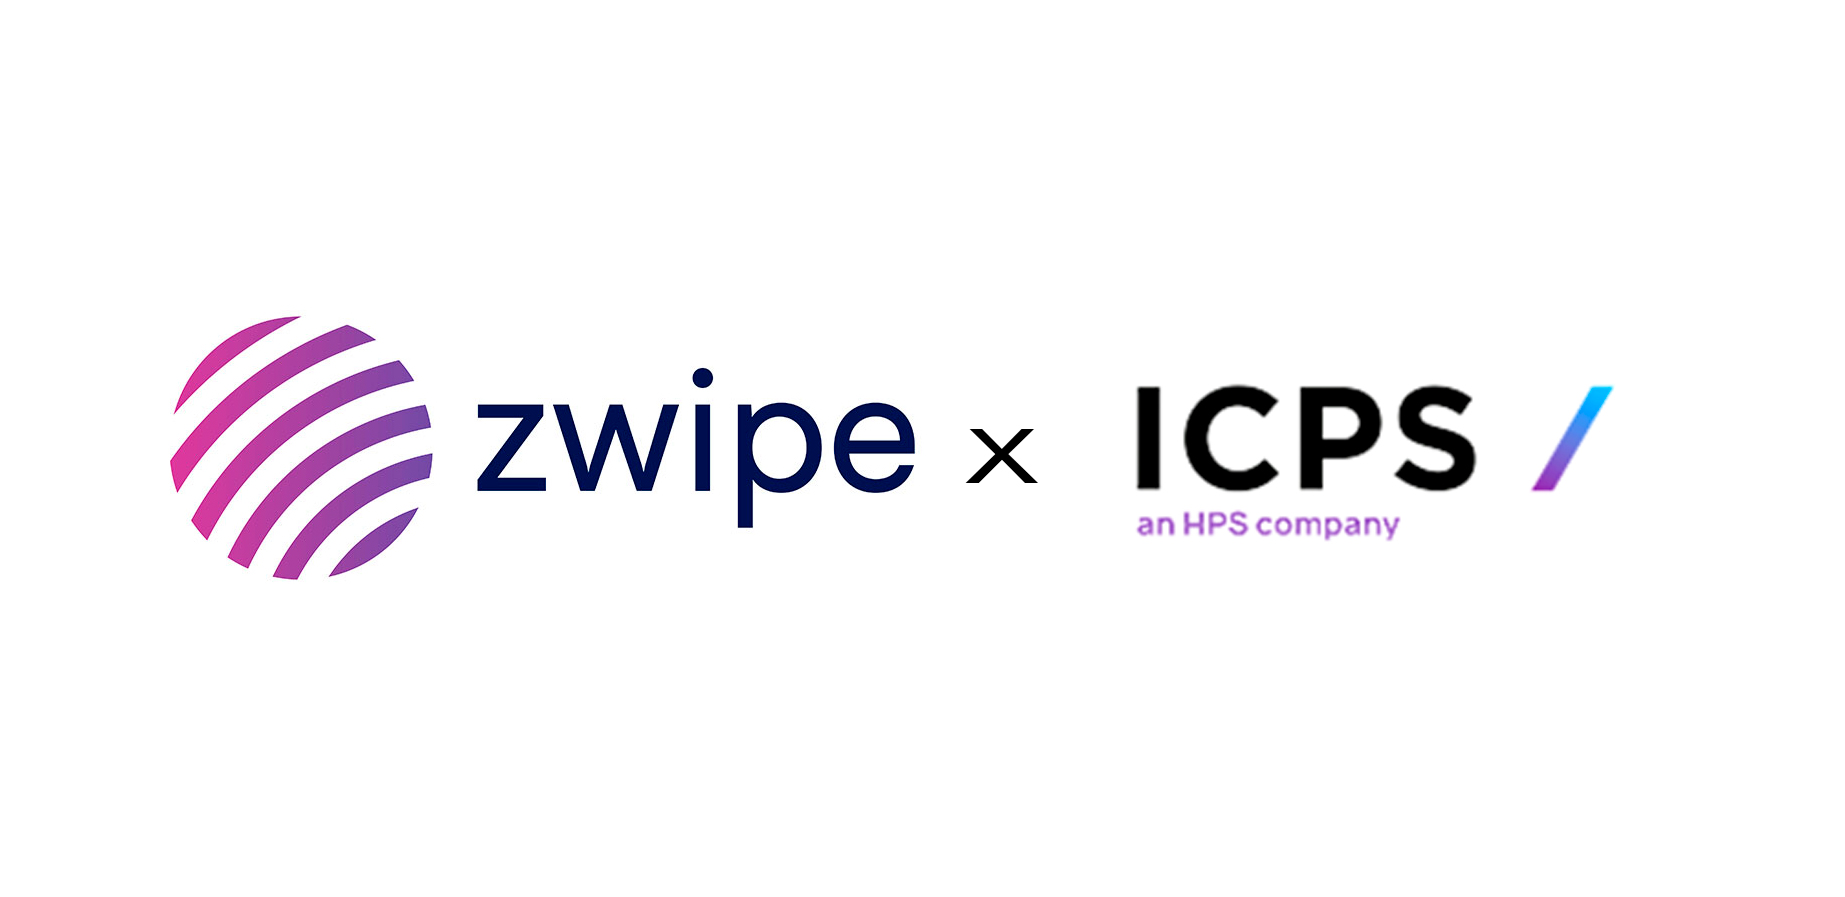 ICPS Partners with Zwipe to Bring Biometric Payment Cards in Africa and Asia